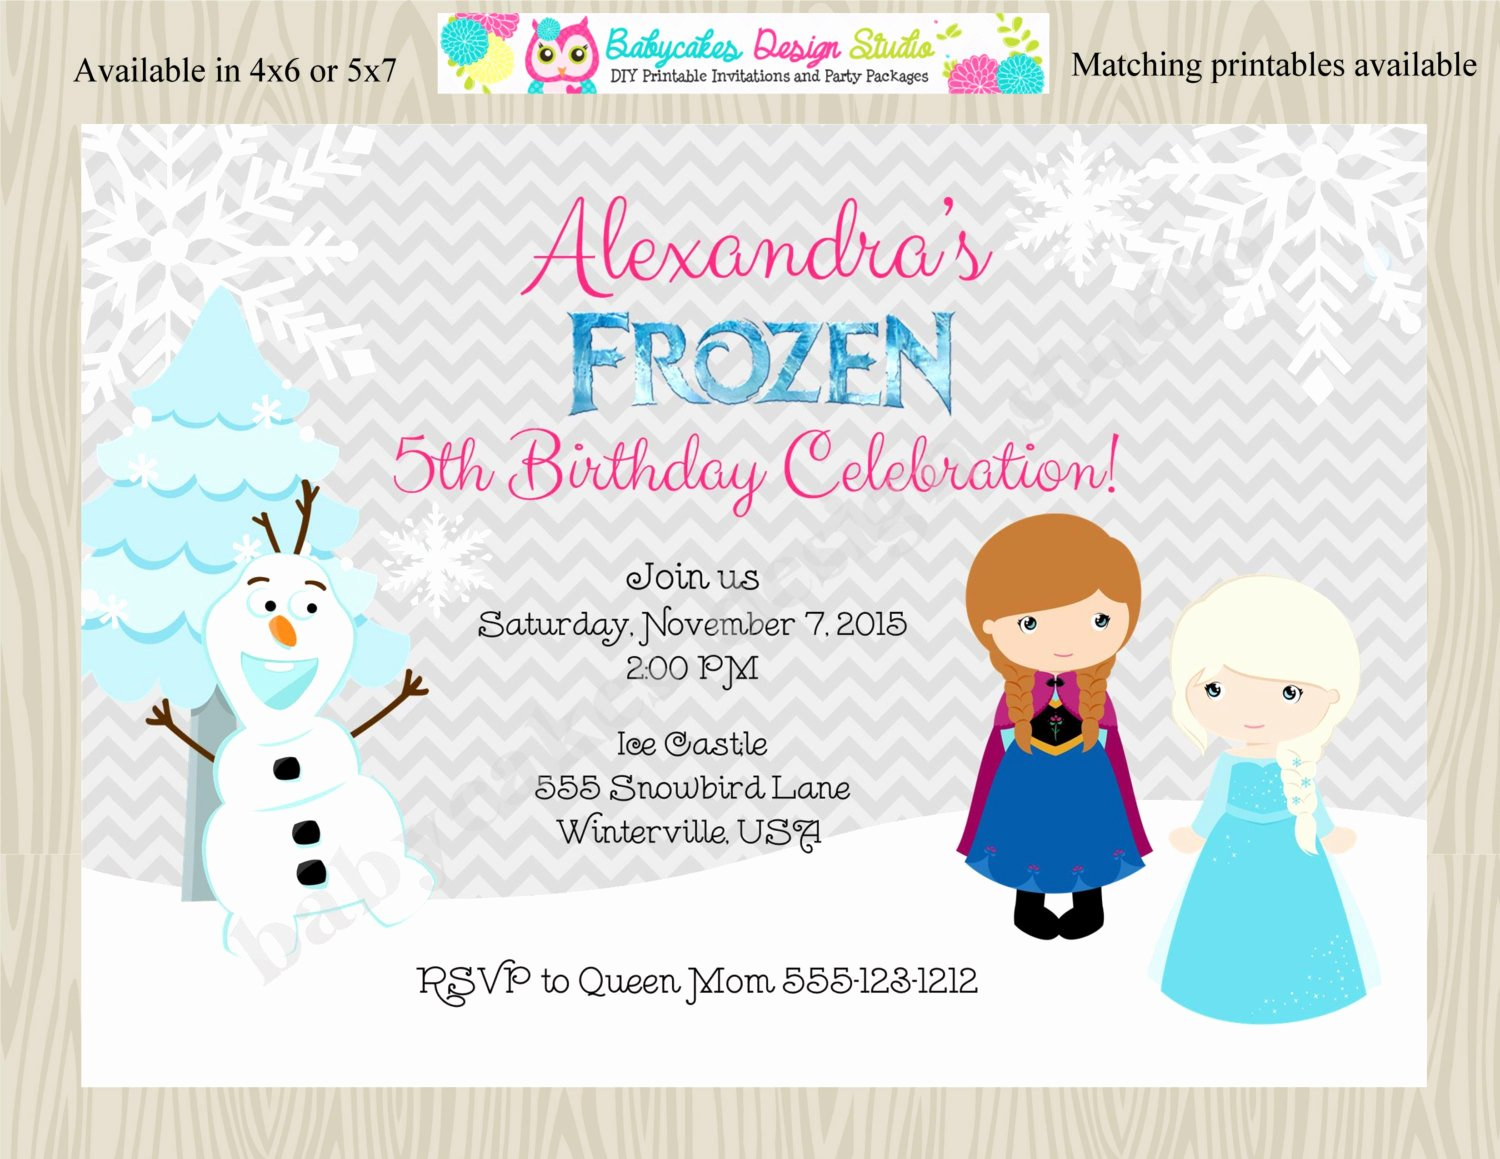 Frozen Birthday Invitation Wording Elegant Frozen Birthday Party Invitation Invite Anna Elsa Ice